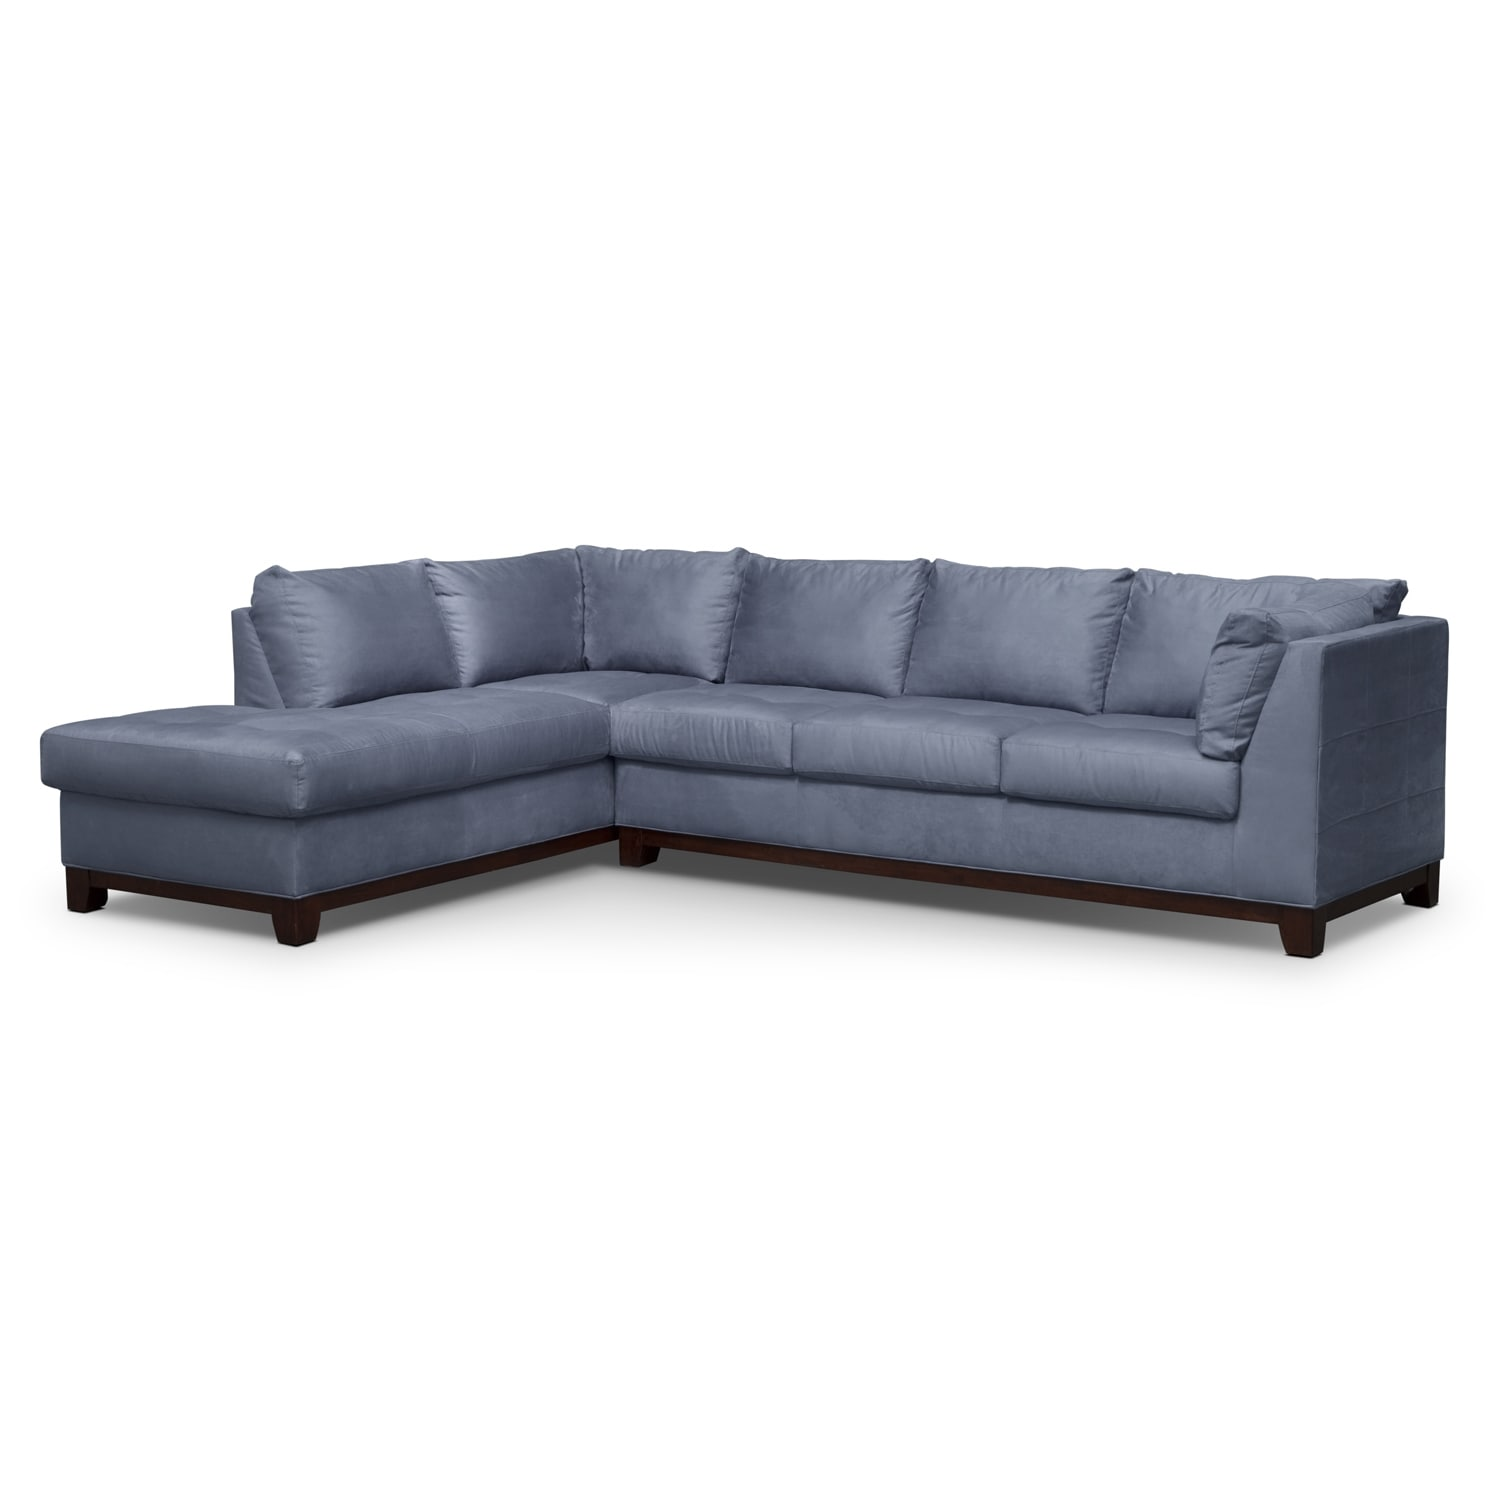 Soho 2 piece sectional with left facing chaise steel for Couch with 2 chaises